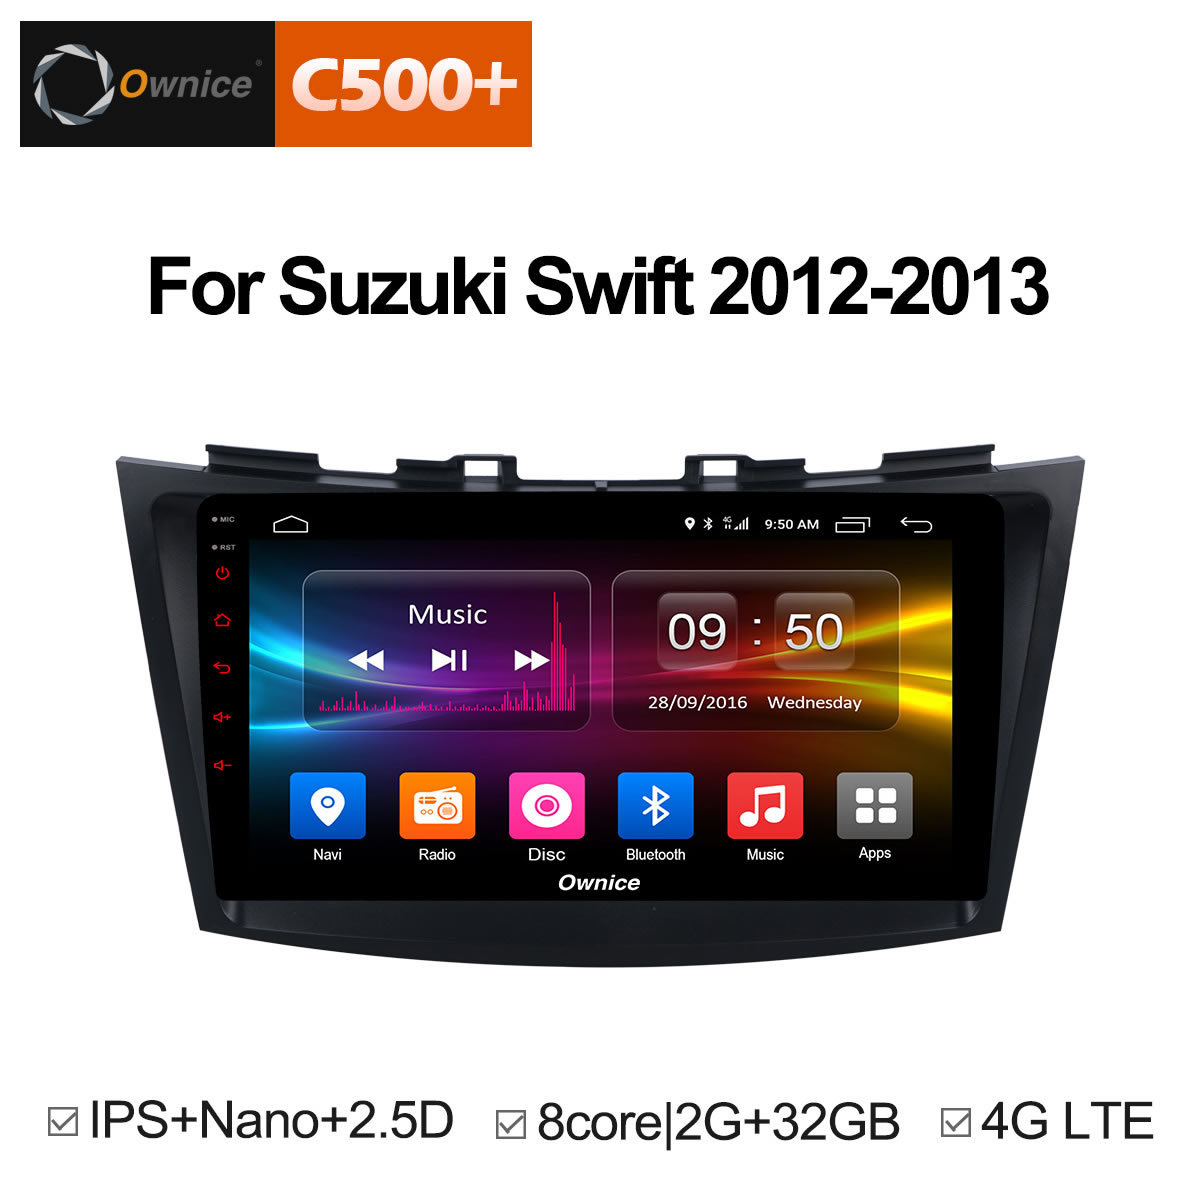 Ownice C500+ G10 Android 8.1 Car dvd player for SUZUKI SWIFT 2012 2013 CAR DVD GPS Navigation System Radio Audio Headunit Stereo